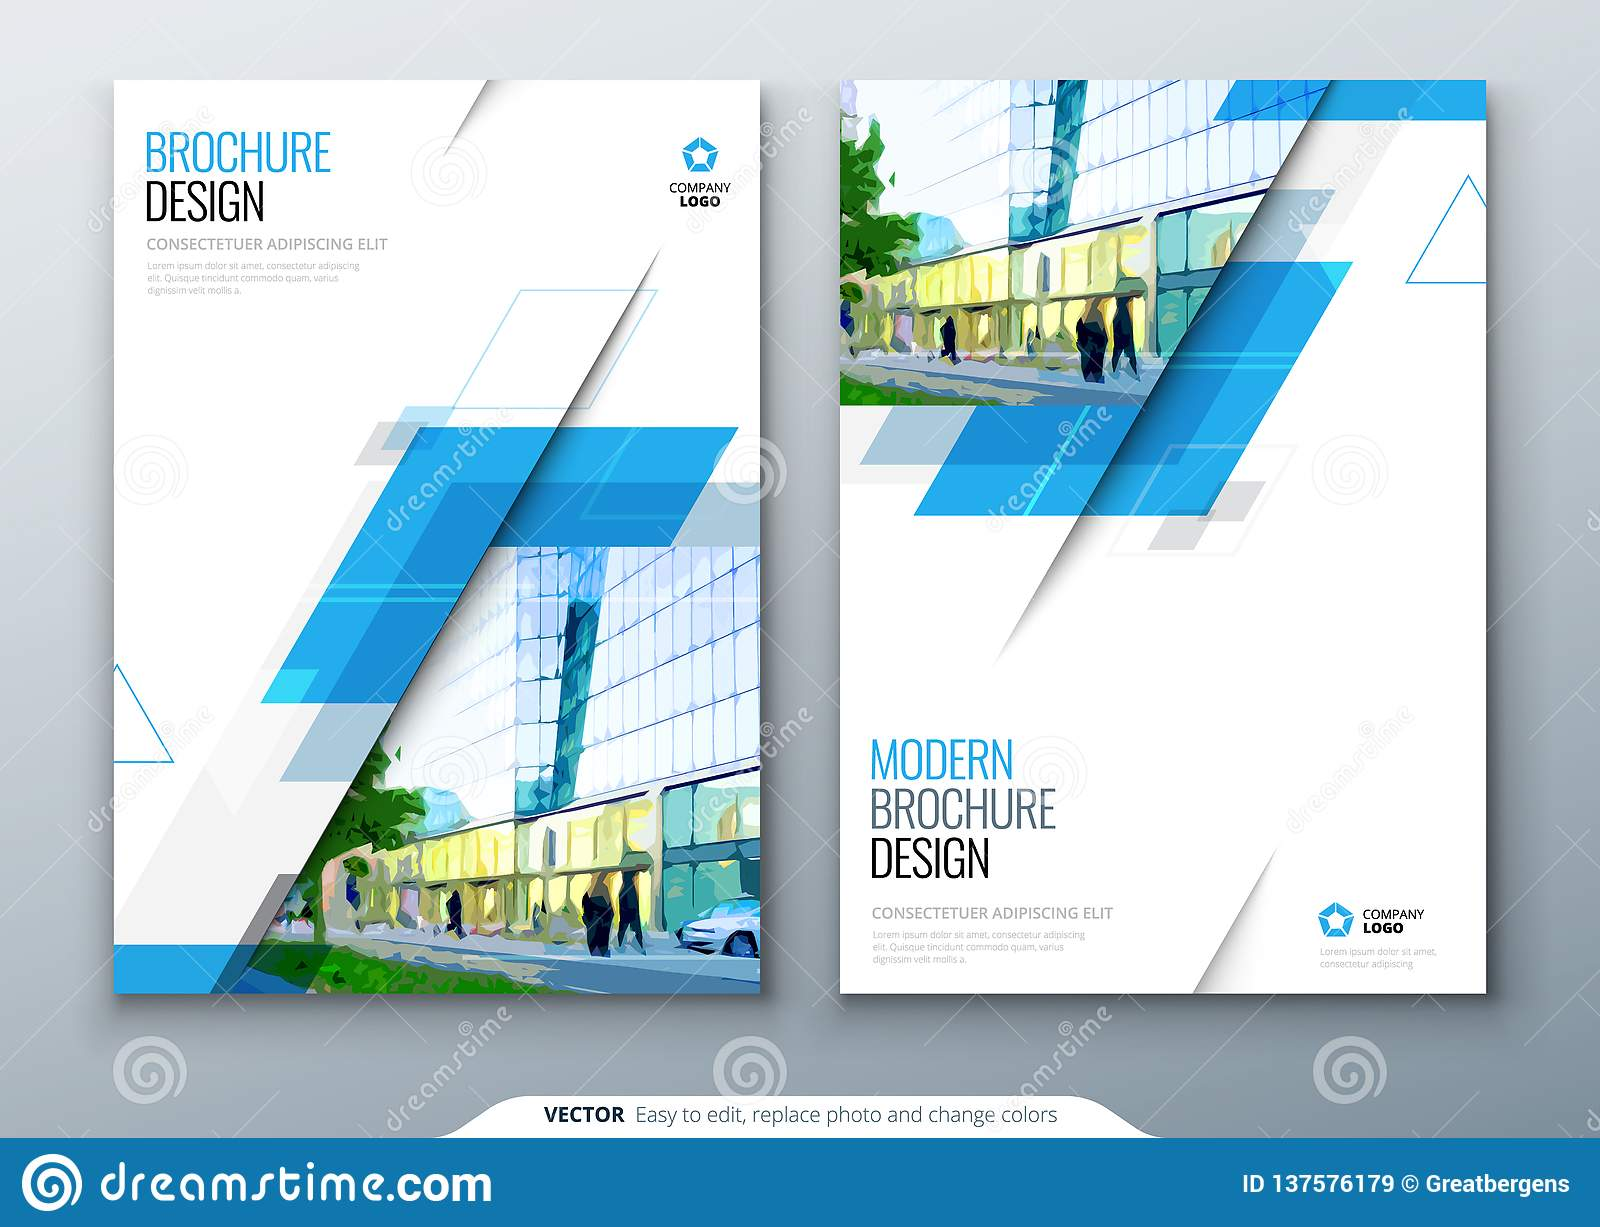 Brochure template layout design. Corporate business annual report, catalog, magazine, flyer mockup. Creative modern